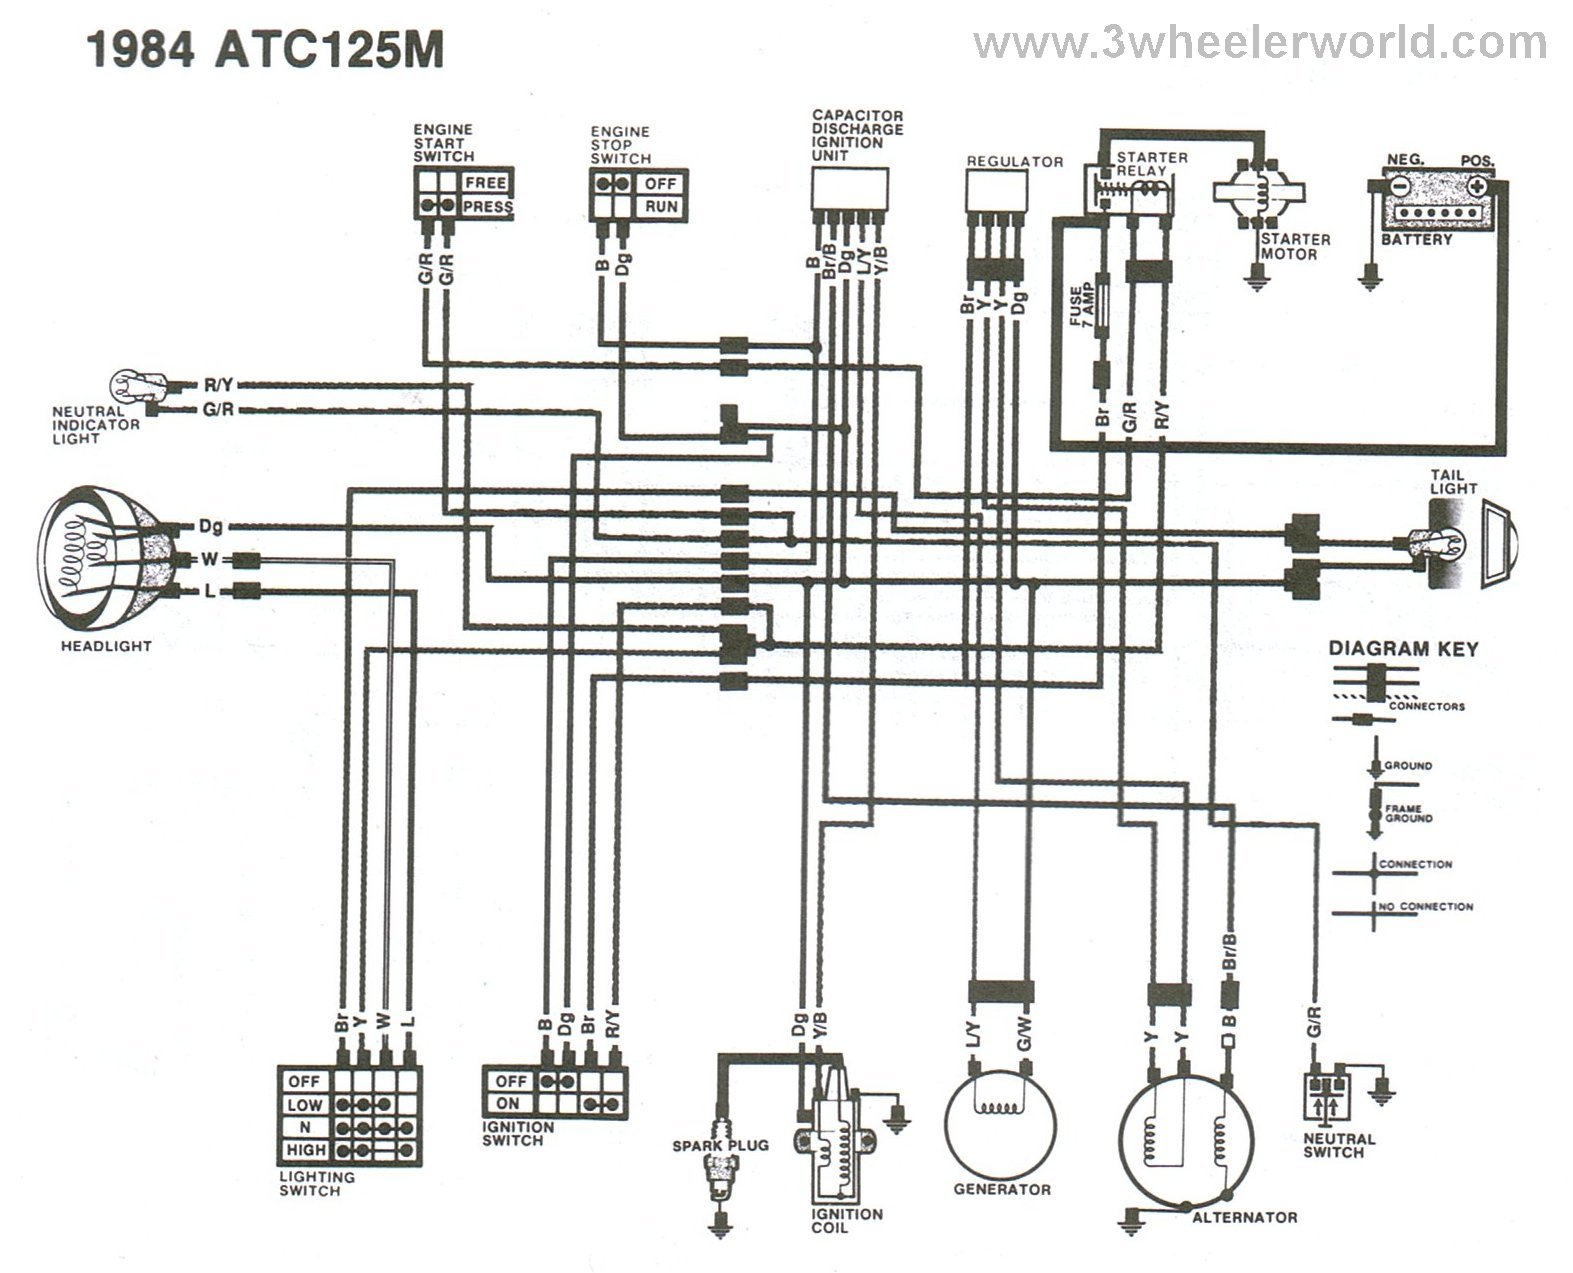 Honda Atv 125cc Wiring Diagram on gy6 carburetor diagram